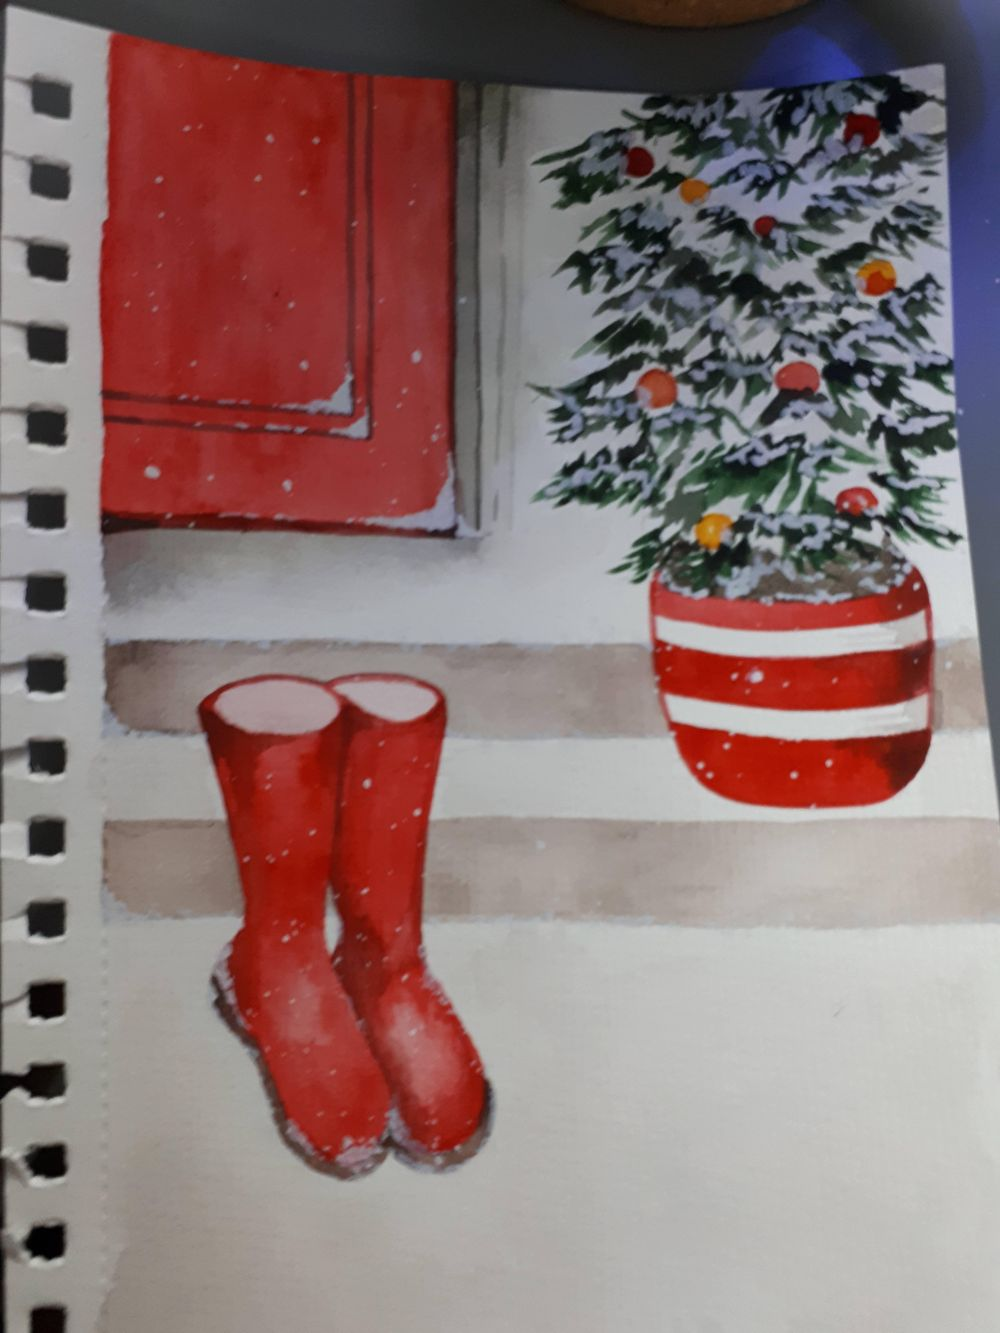 Christmas pictures - image 1 - student project